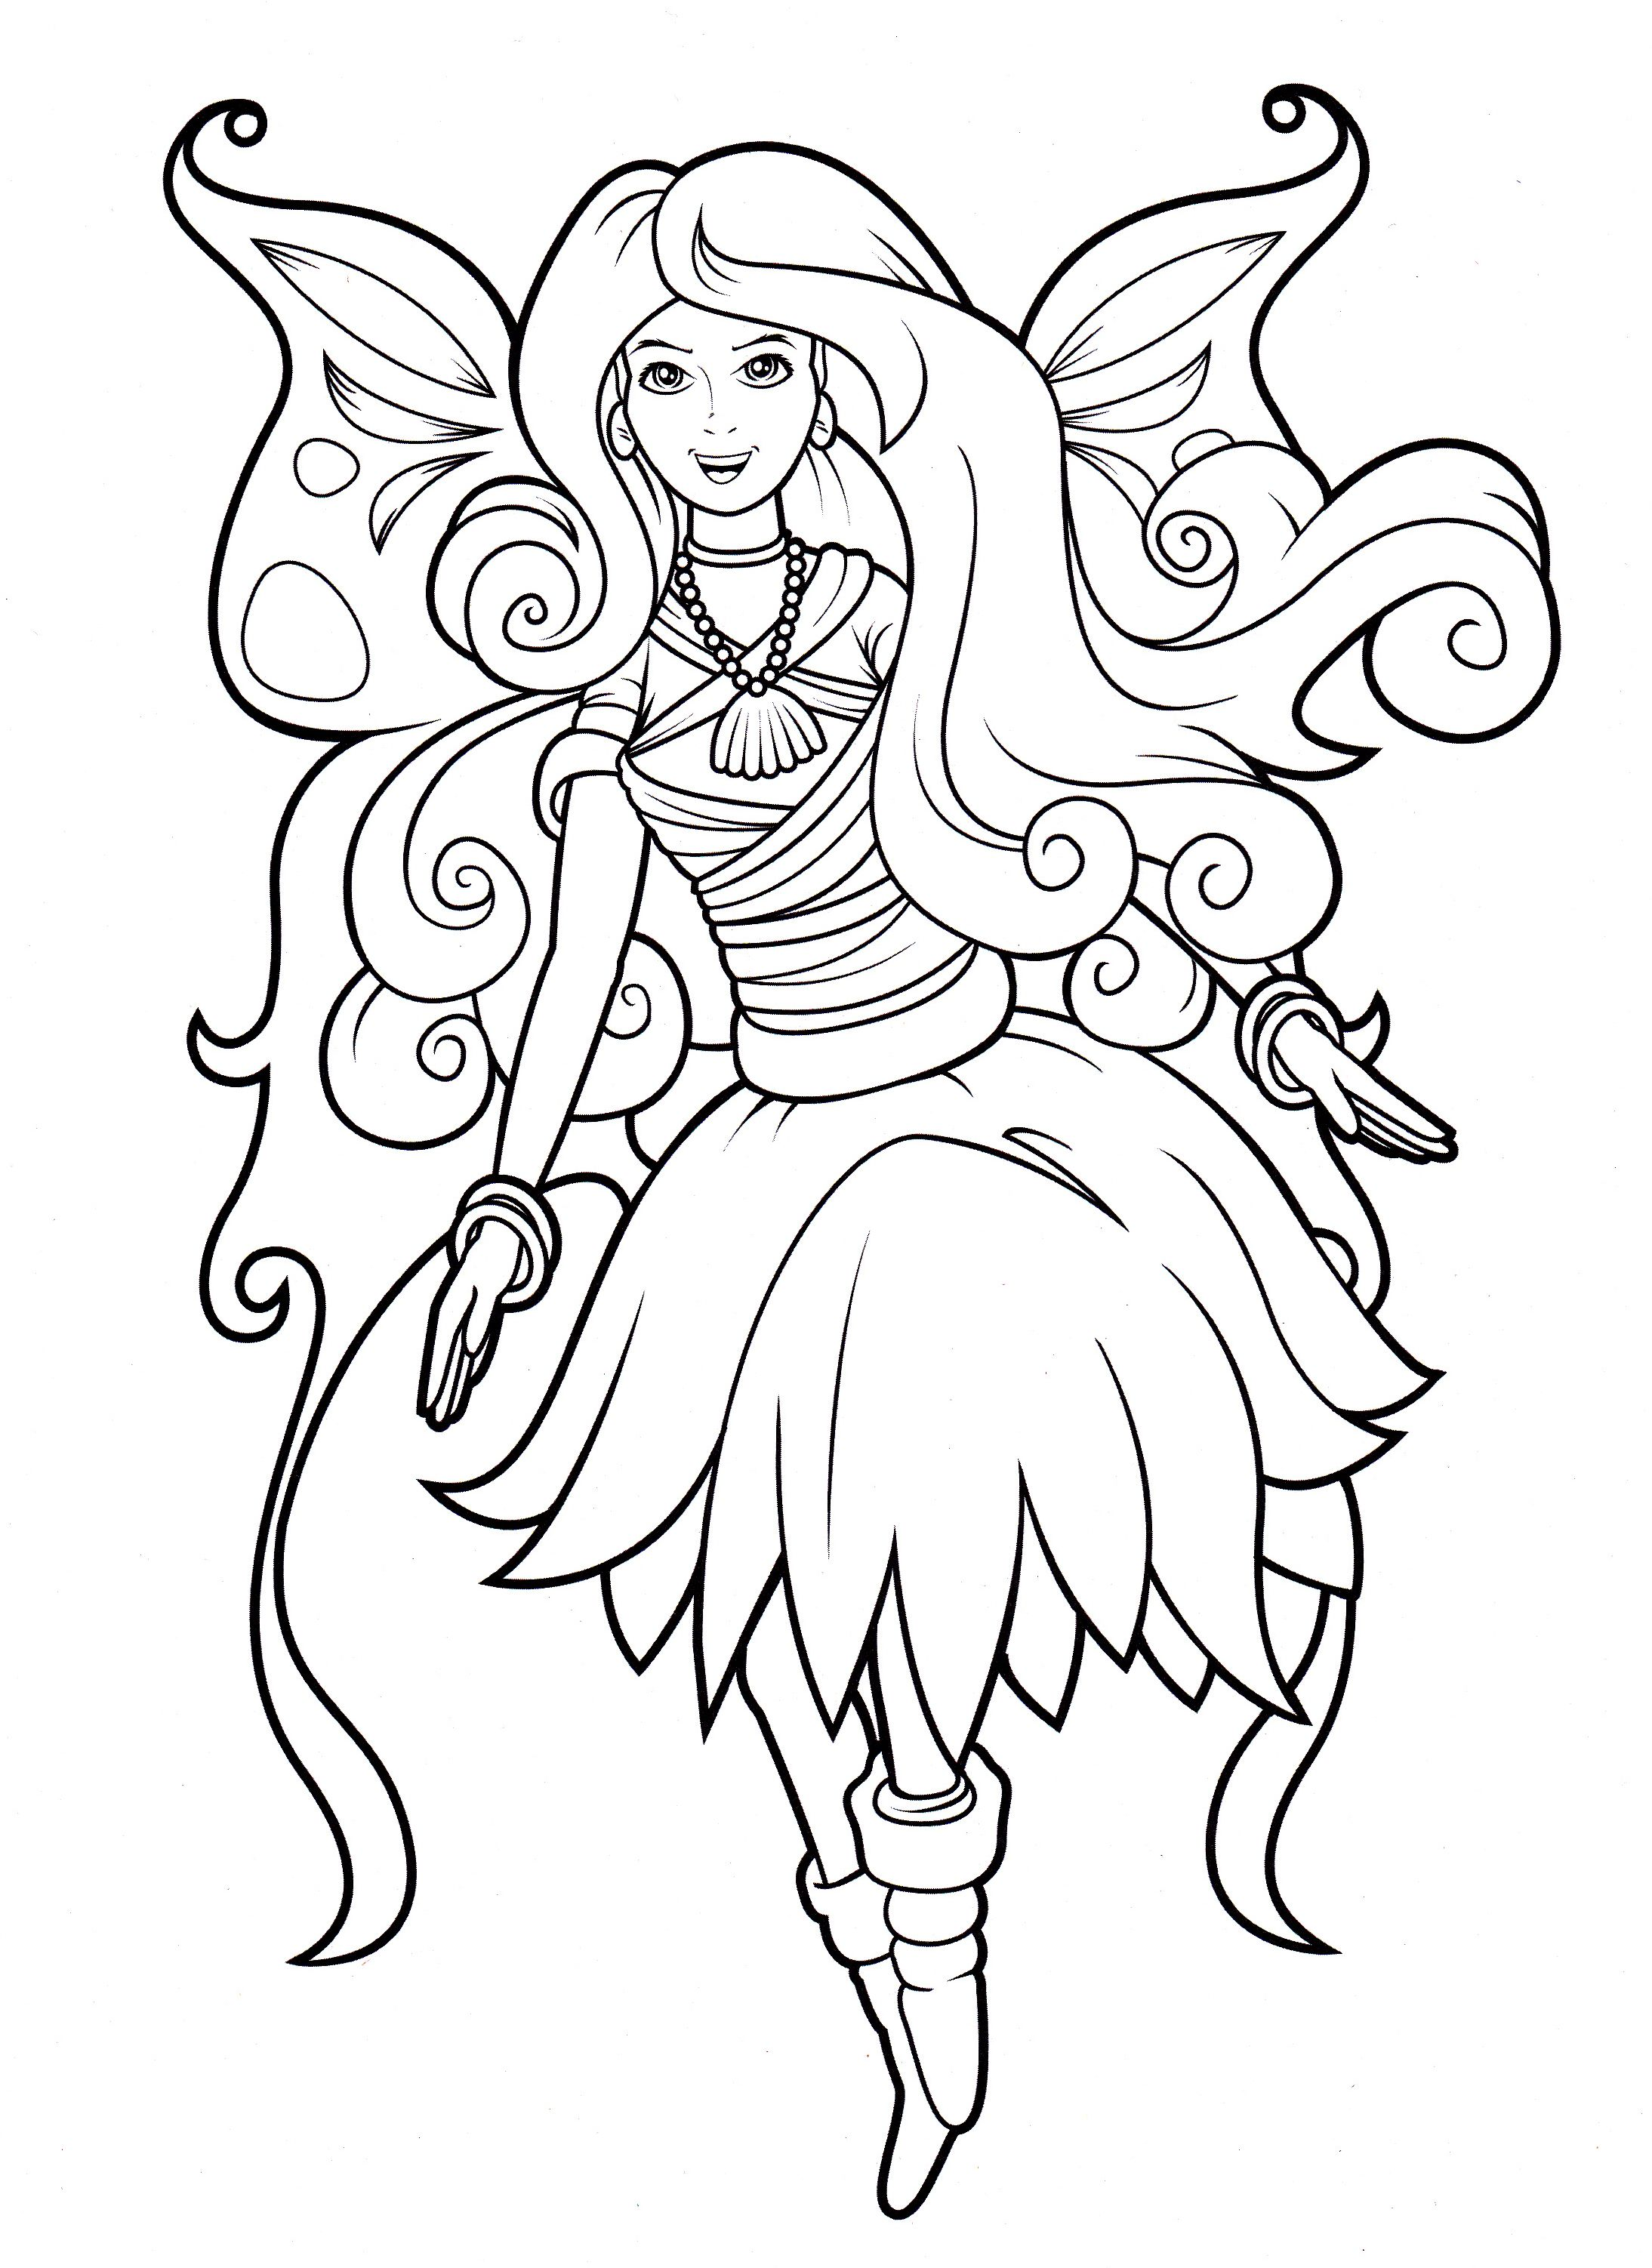 Fairy from Lilly Butterfly coloring book Cool coloring pages Coloring books Coloring pages